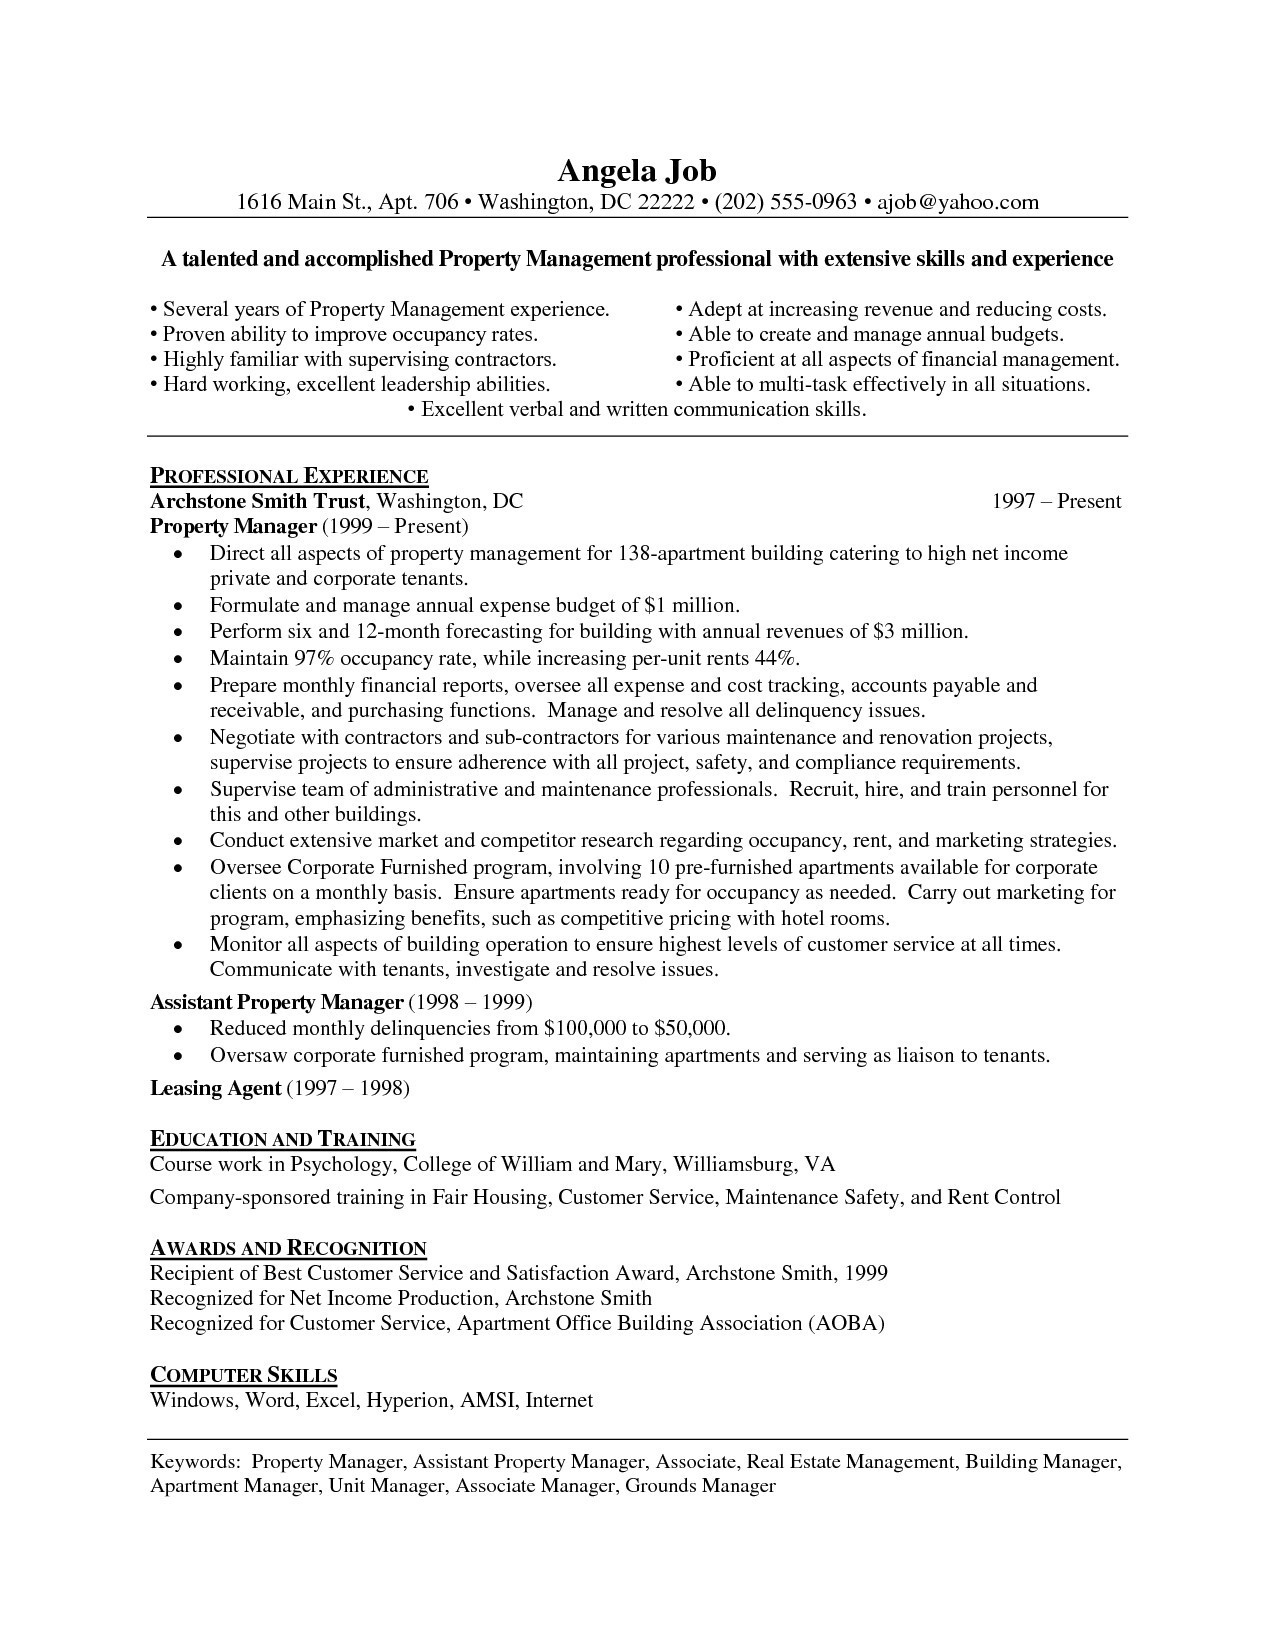 Residential Property Manager Resume Sample - Property Management Resume Examples Reference assistant Property